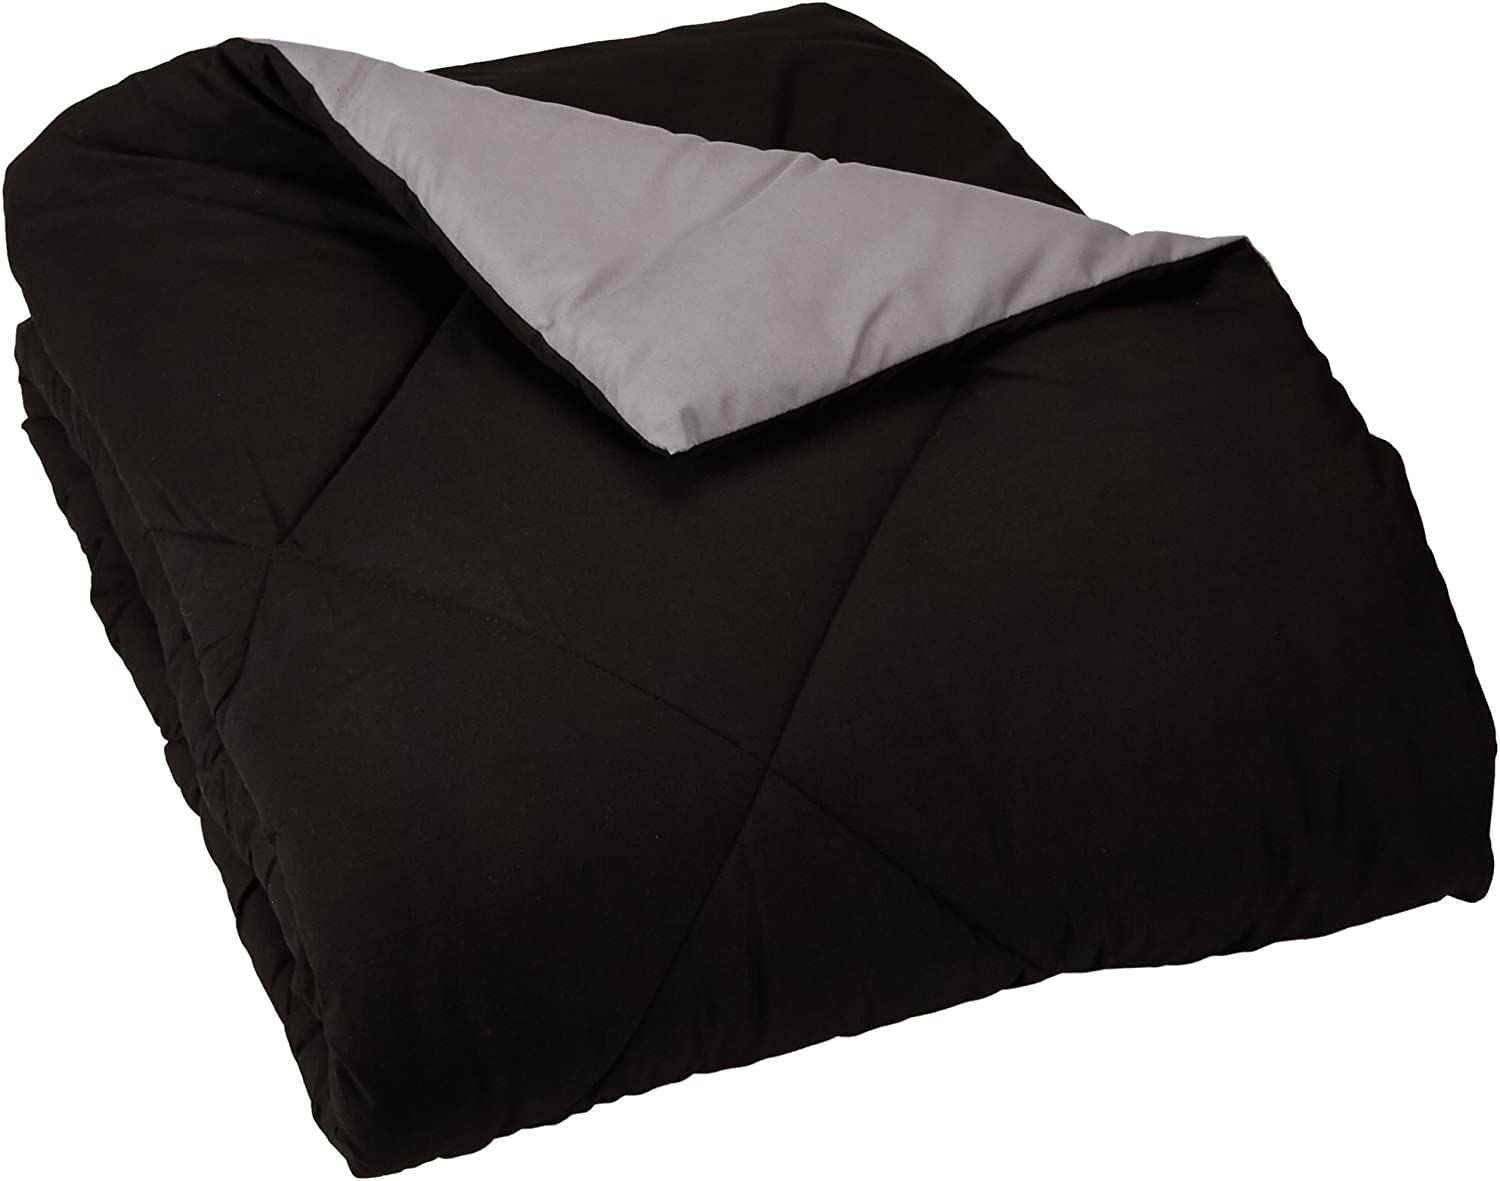 AmazonBasics Reversible Microfiber Comforter Blanket - Pack of 4, Twin or Twin XL, Black